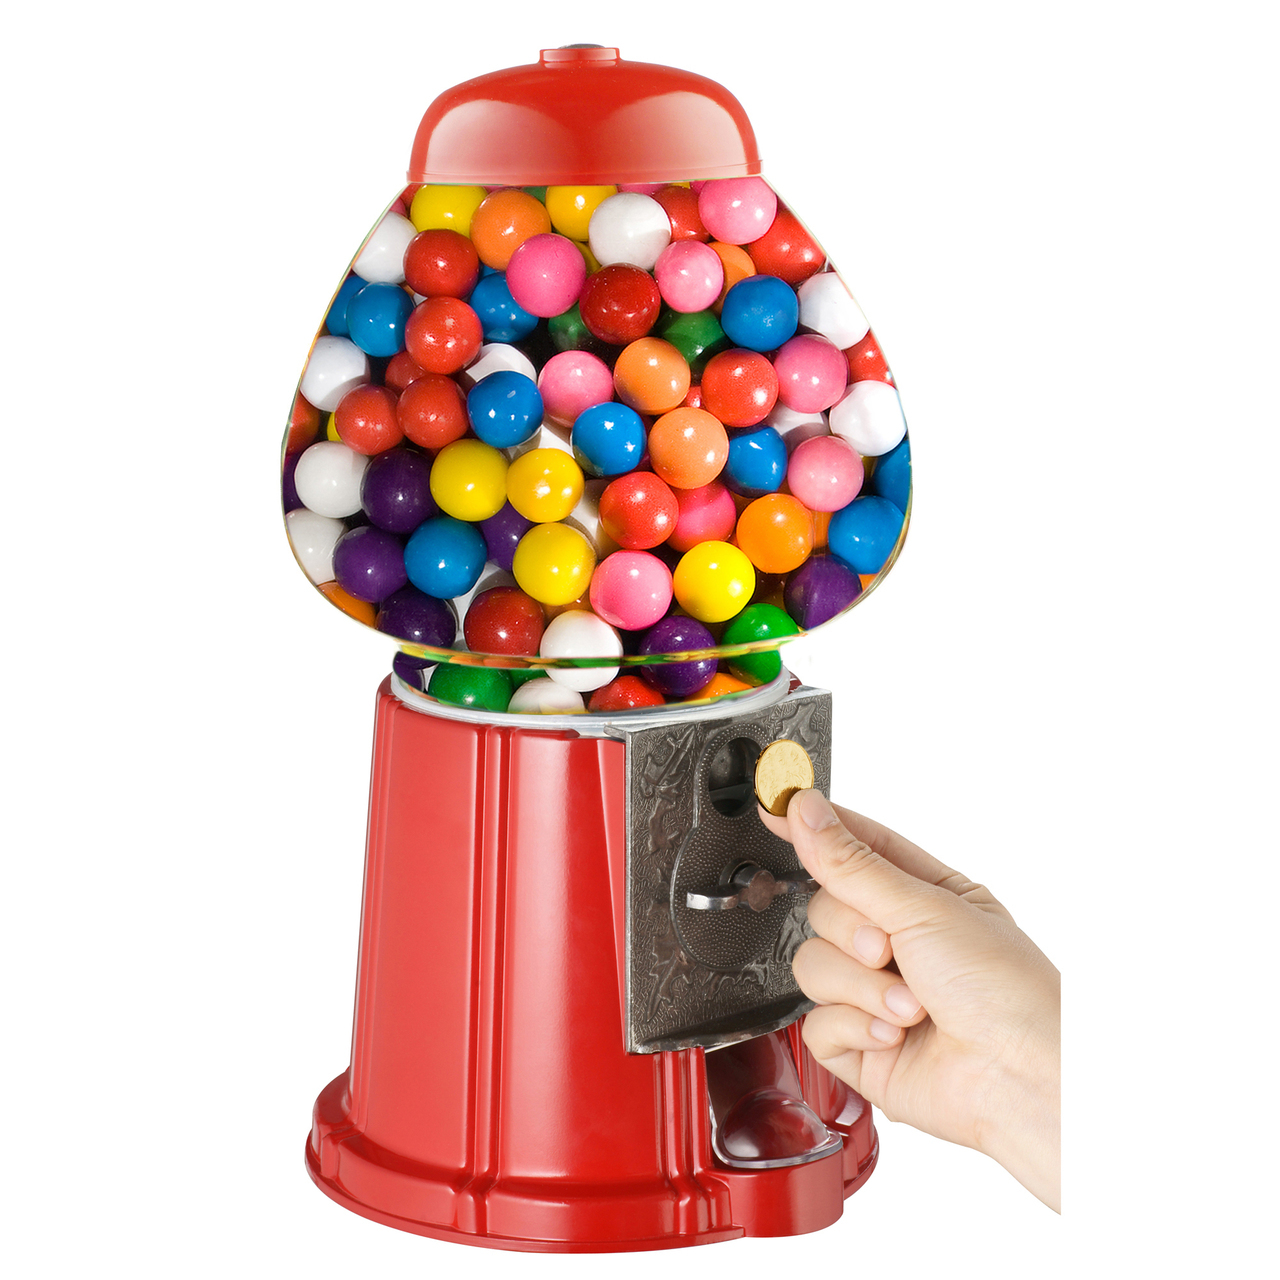 Gumball Dispenser Machine Toy 90g Bubble Gum Bag Included